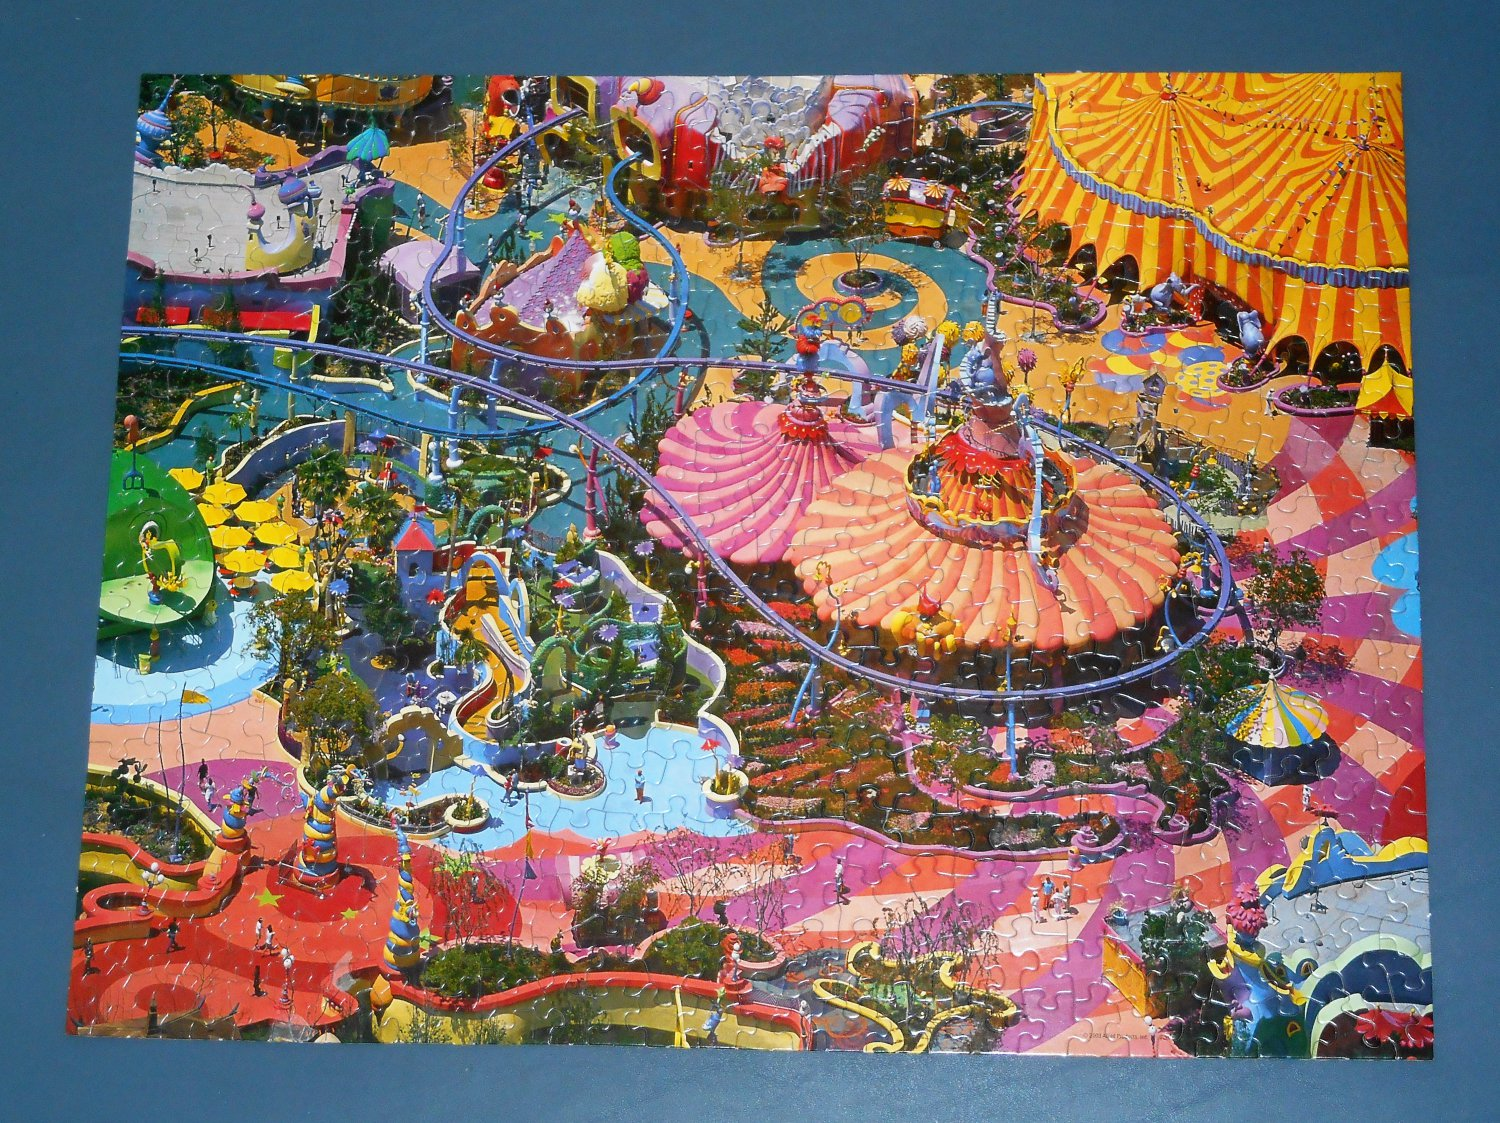 Crazy Carnival 500 Piece Springbok Jigsaw Puzzle 1JIG01326 COMPLETE